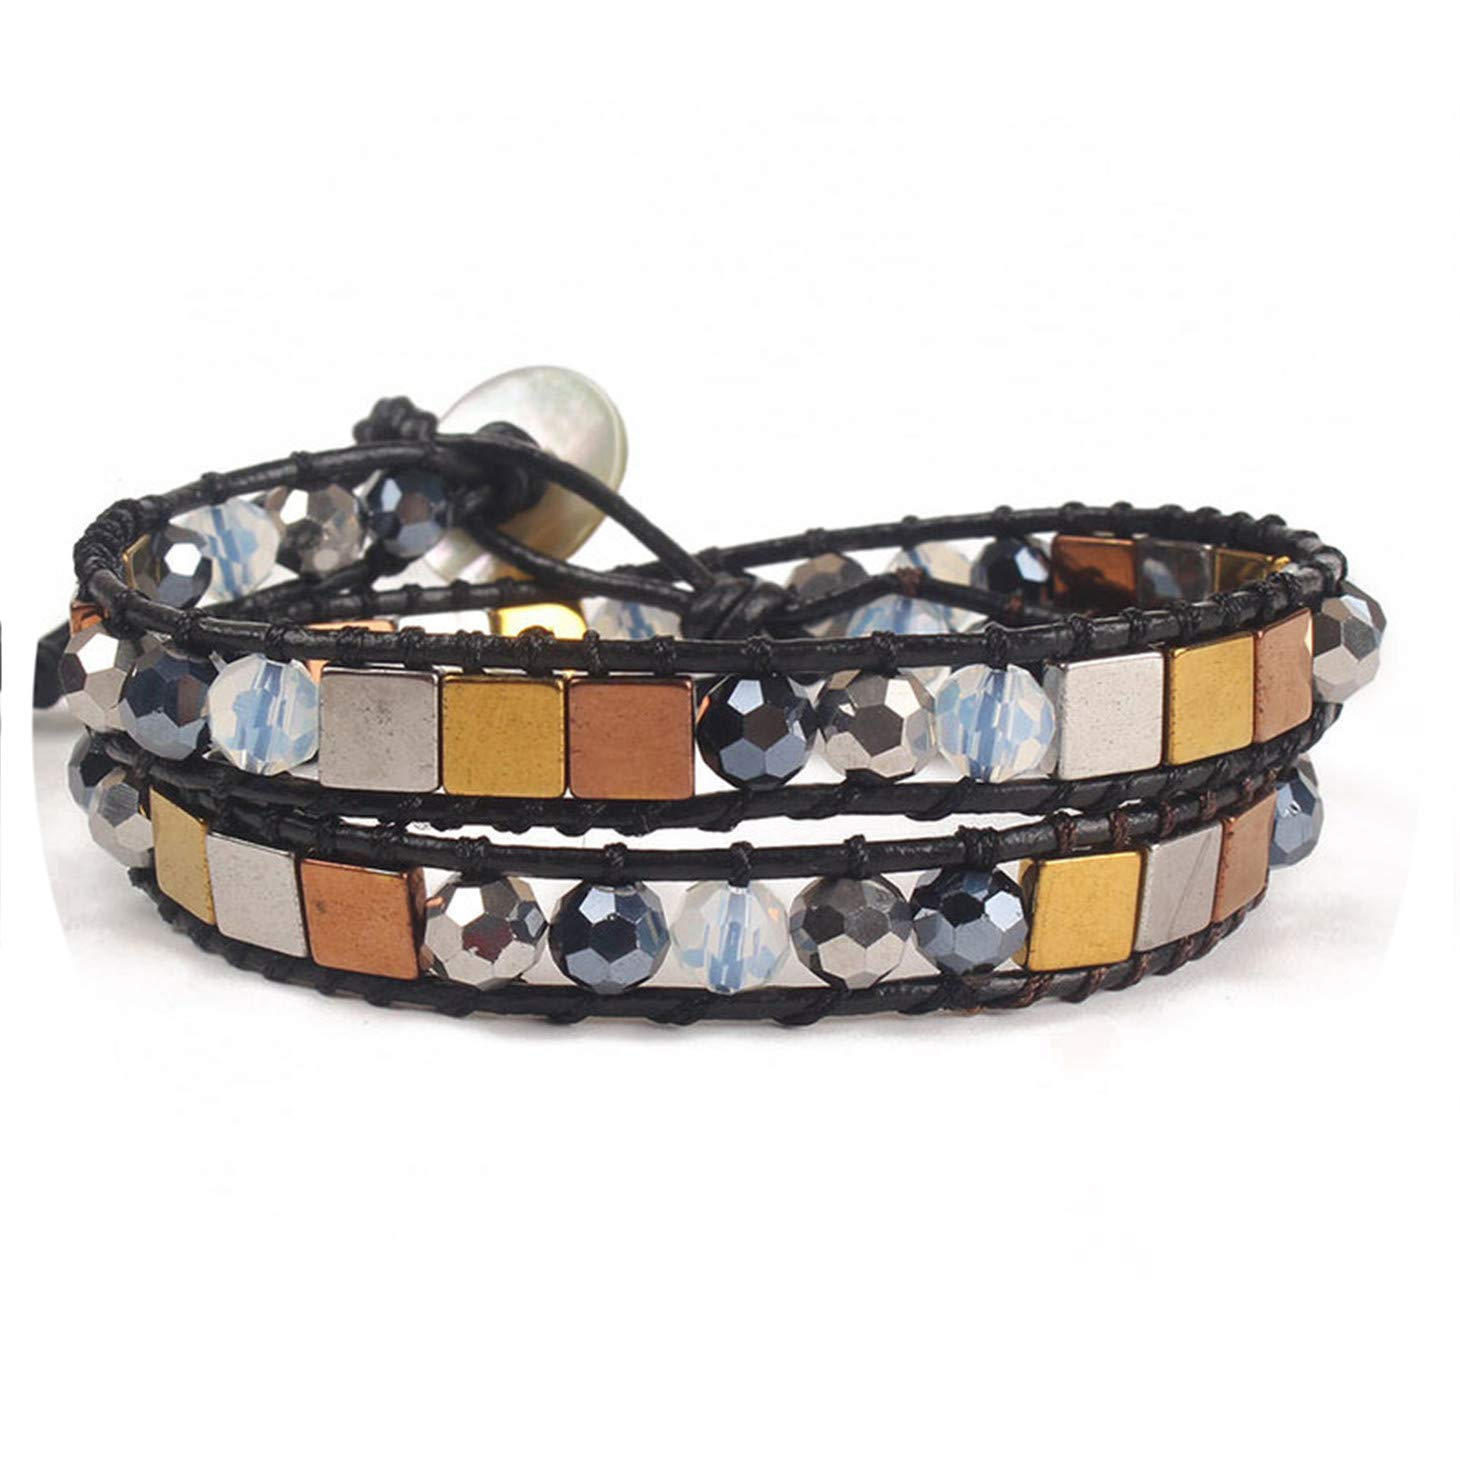 Unique Charming Bracelet Handmade Weaving Leather Wrap Colorful Square Iron Stone Beads Bracelet fo